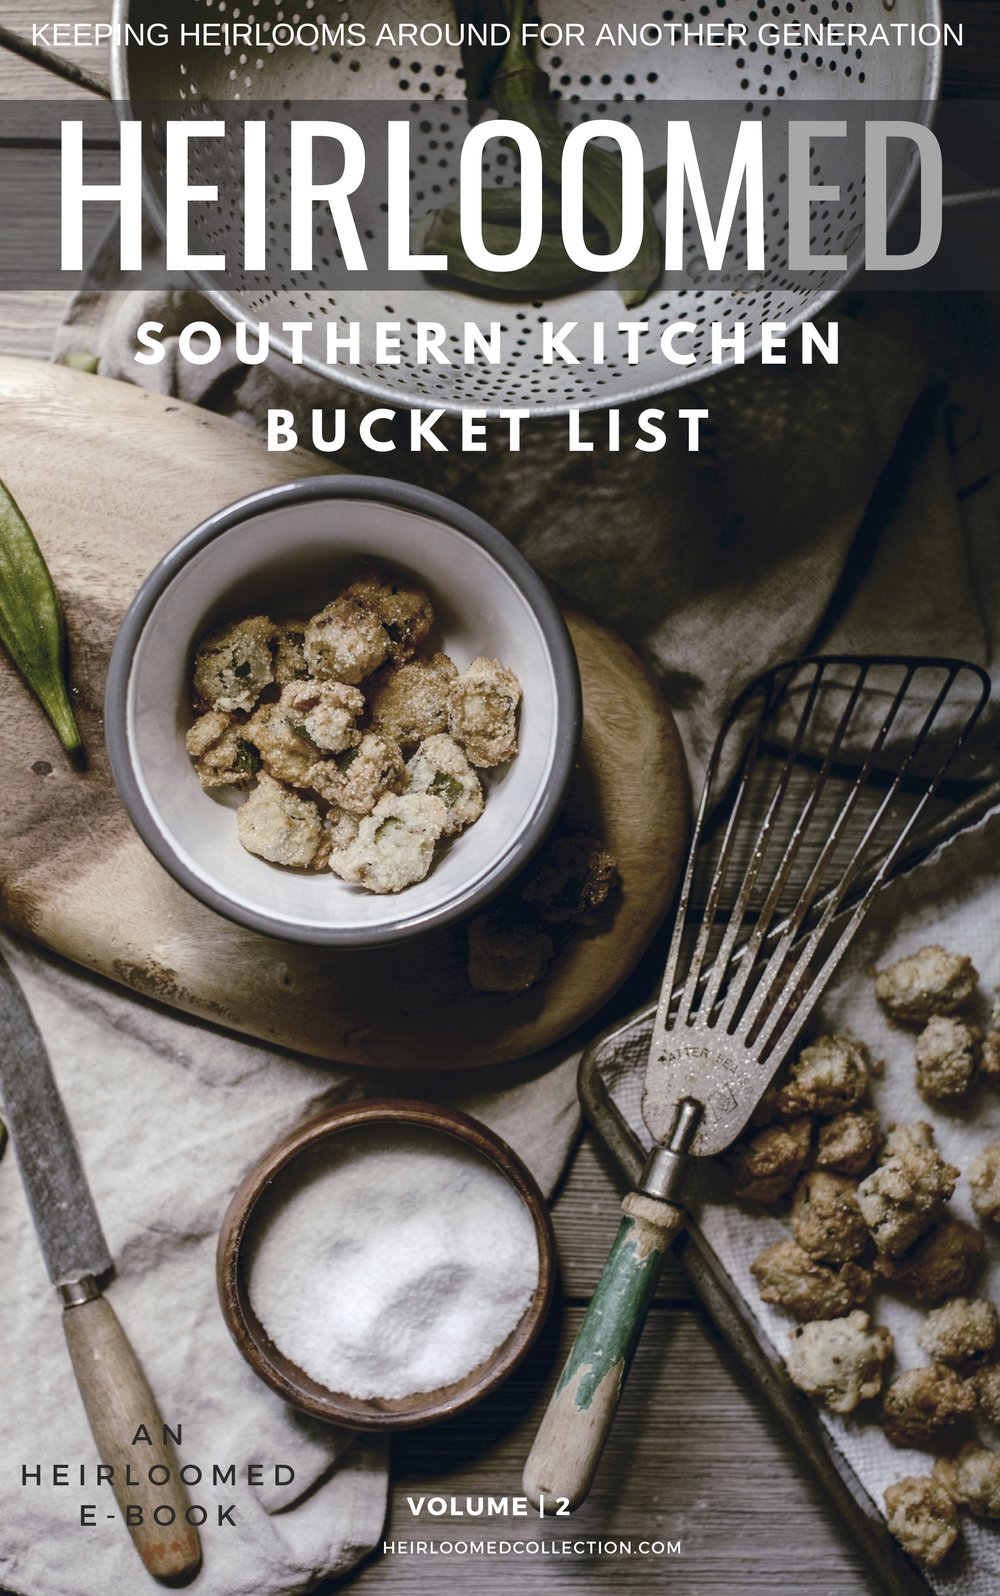 SOUTHERN KITCHEN BUCKET LIST (VOLUME 2)